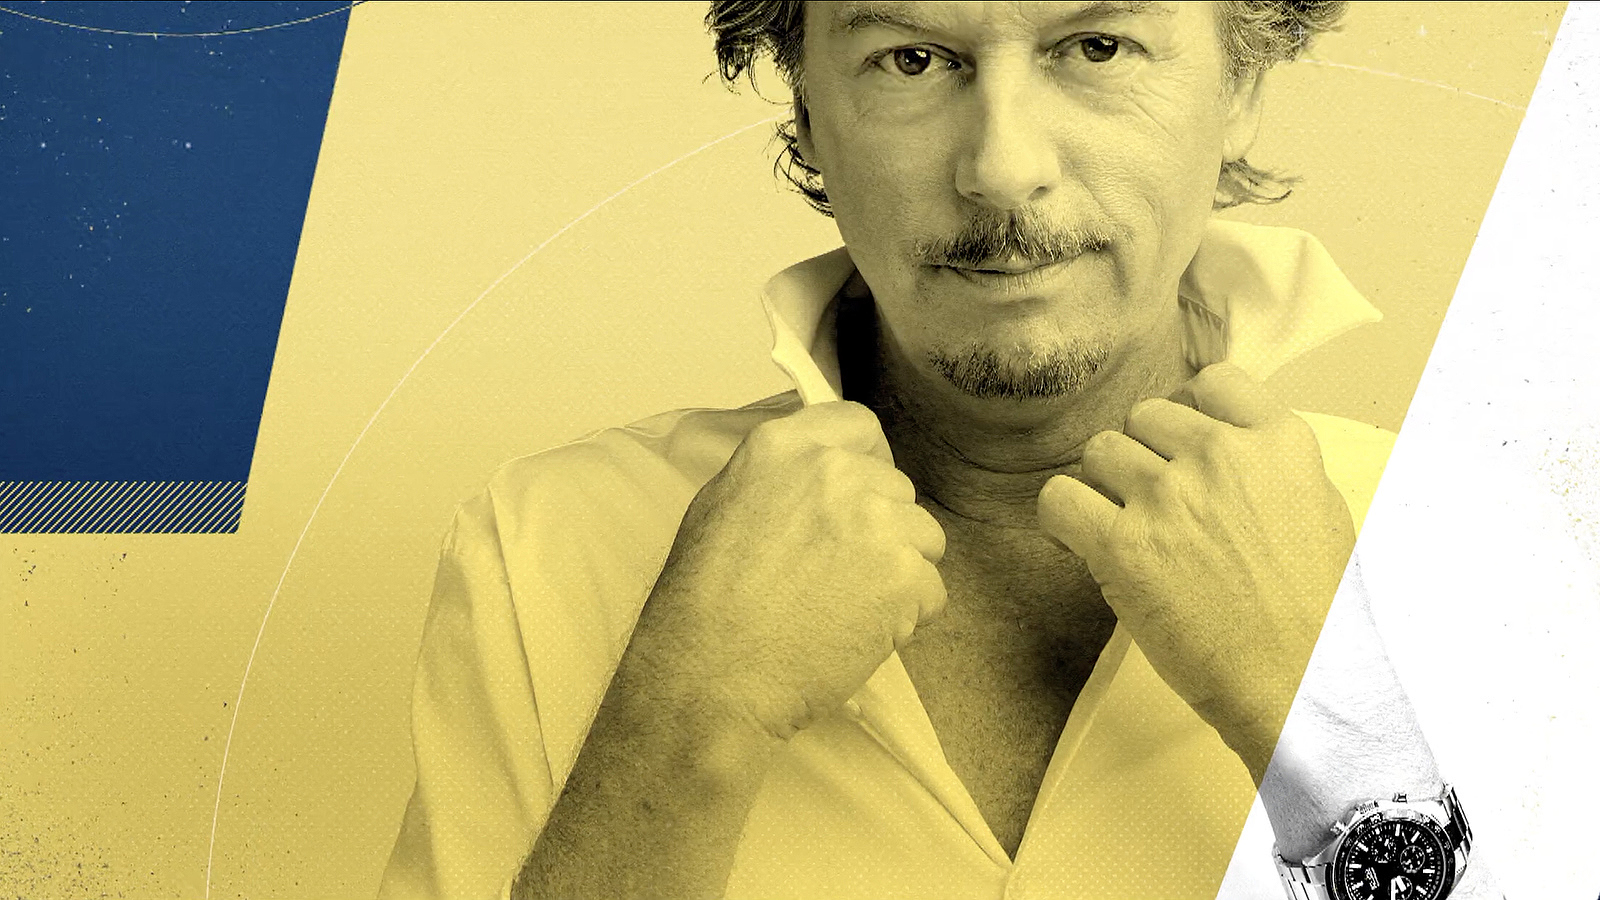 NCS_Comedy-Central_David-Spade_LightsOut_Motion-Graphics_003